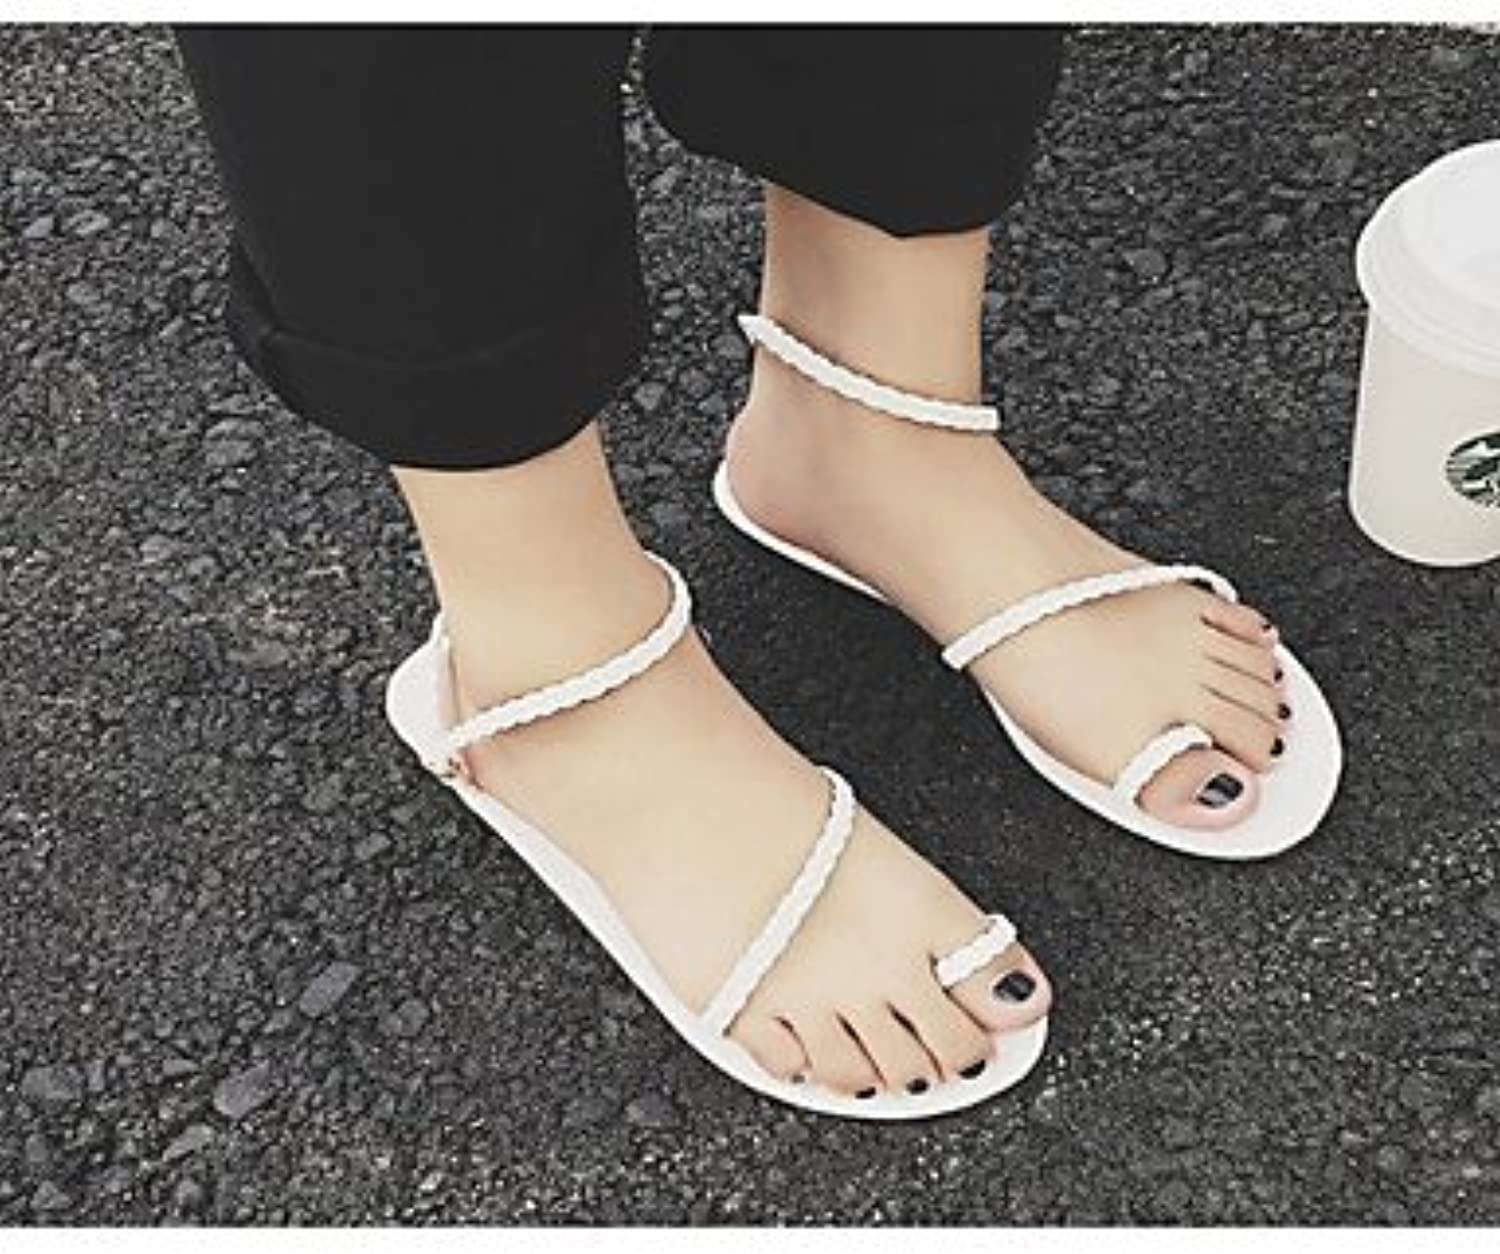 f20d51e6e476 RTRY Women S Sandals Comfort Summer Pu Casual Silver Black Black Black  White Under 1In Parent B075MBPHDG